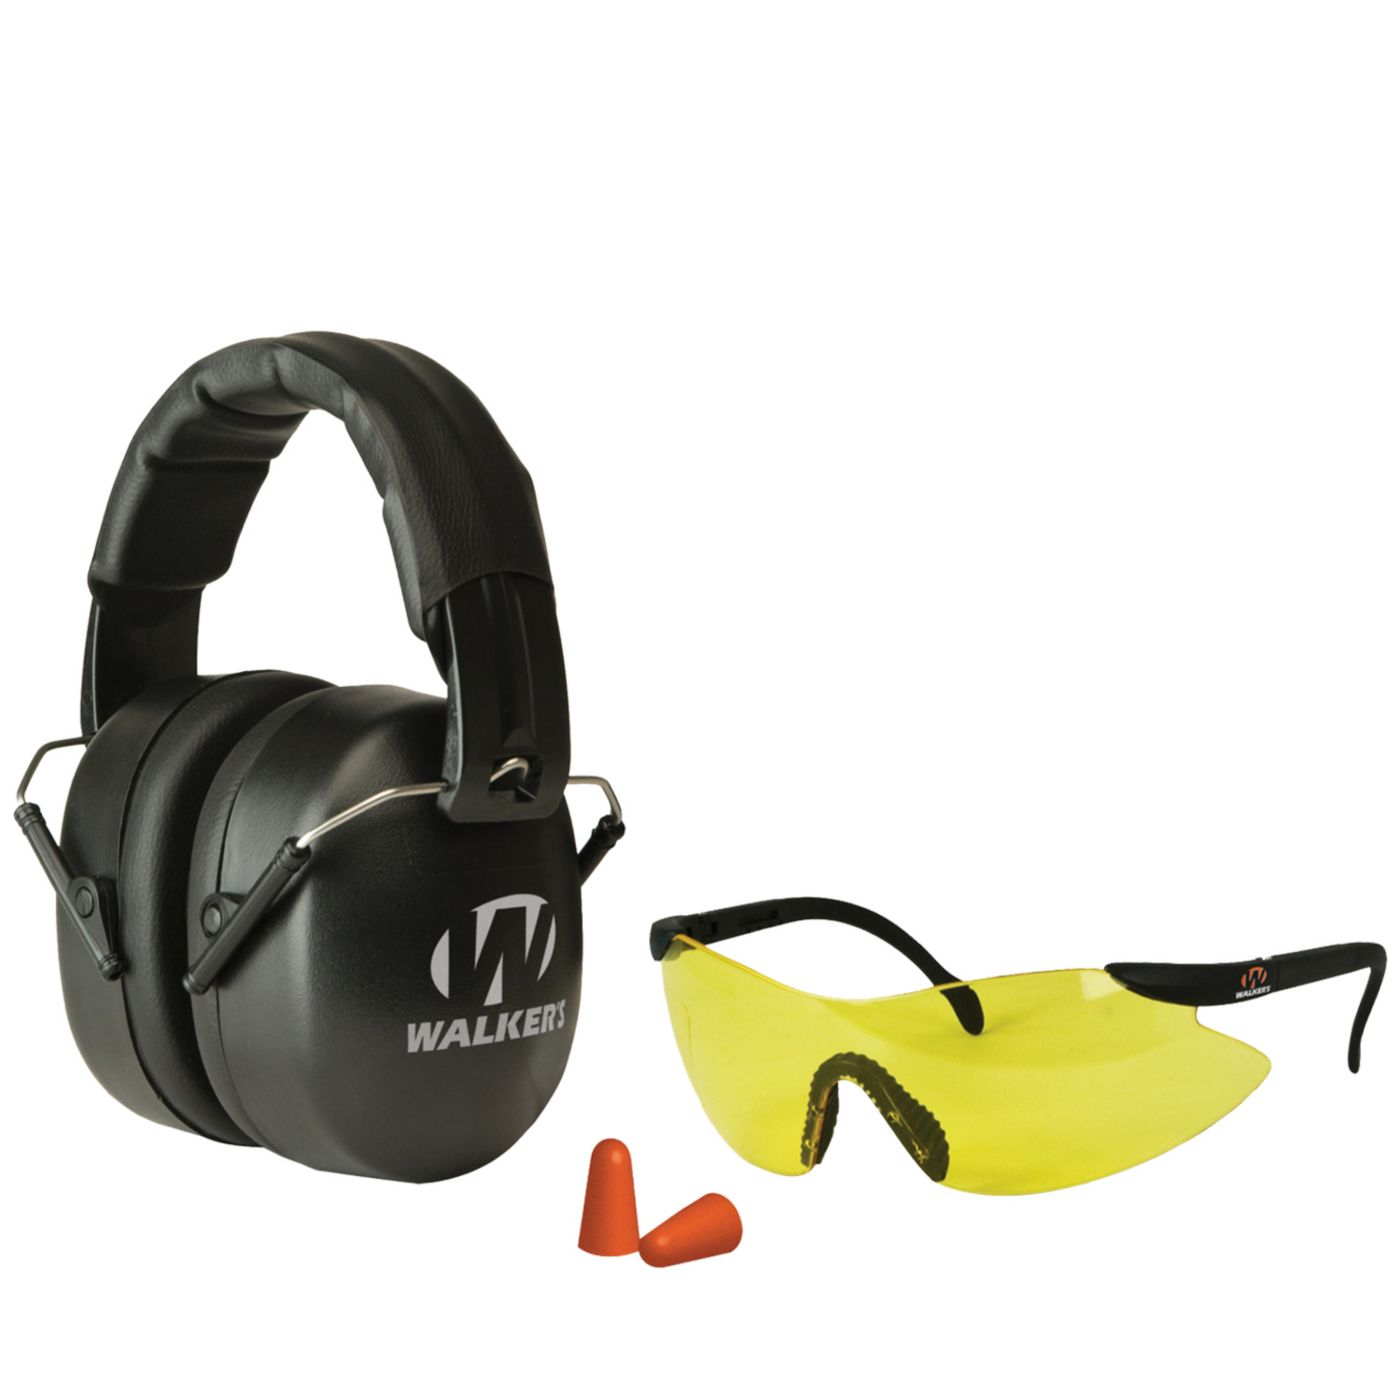 Walker's Game Ear EXT Range Folding Shooting Earmuffs and Glasses Combo